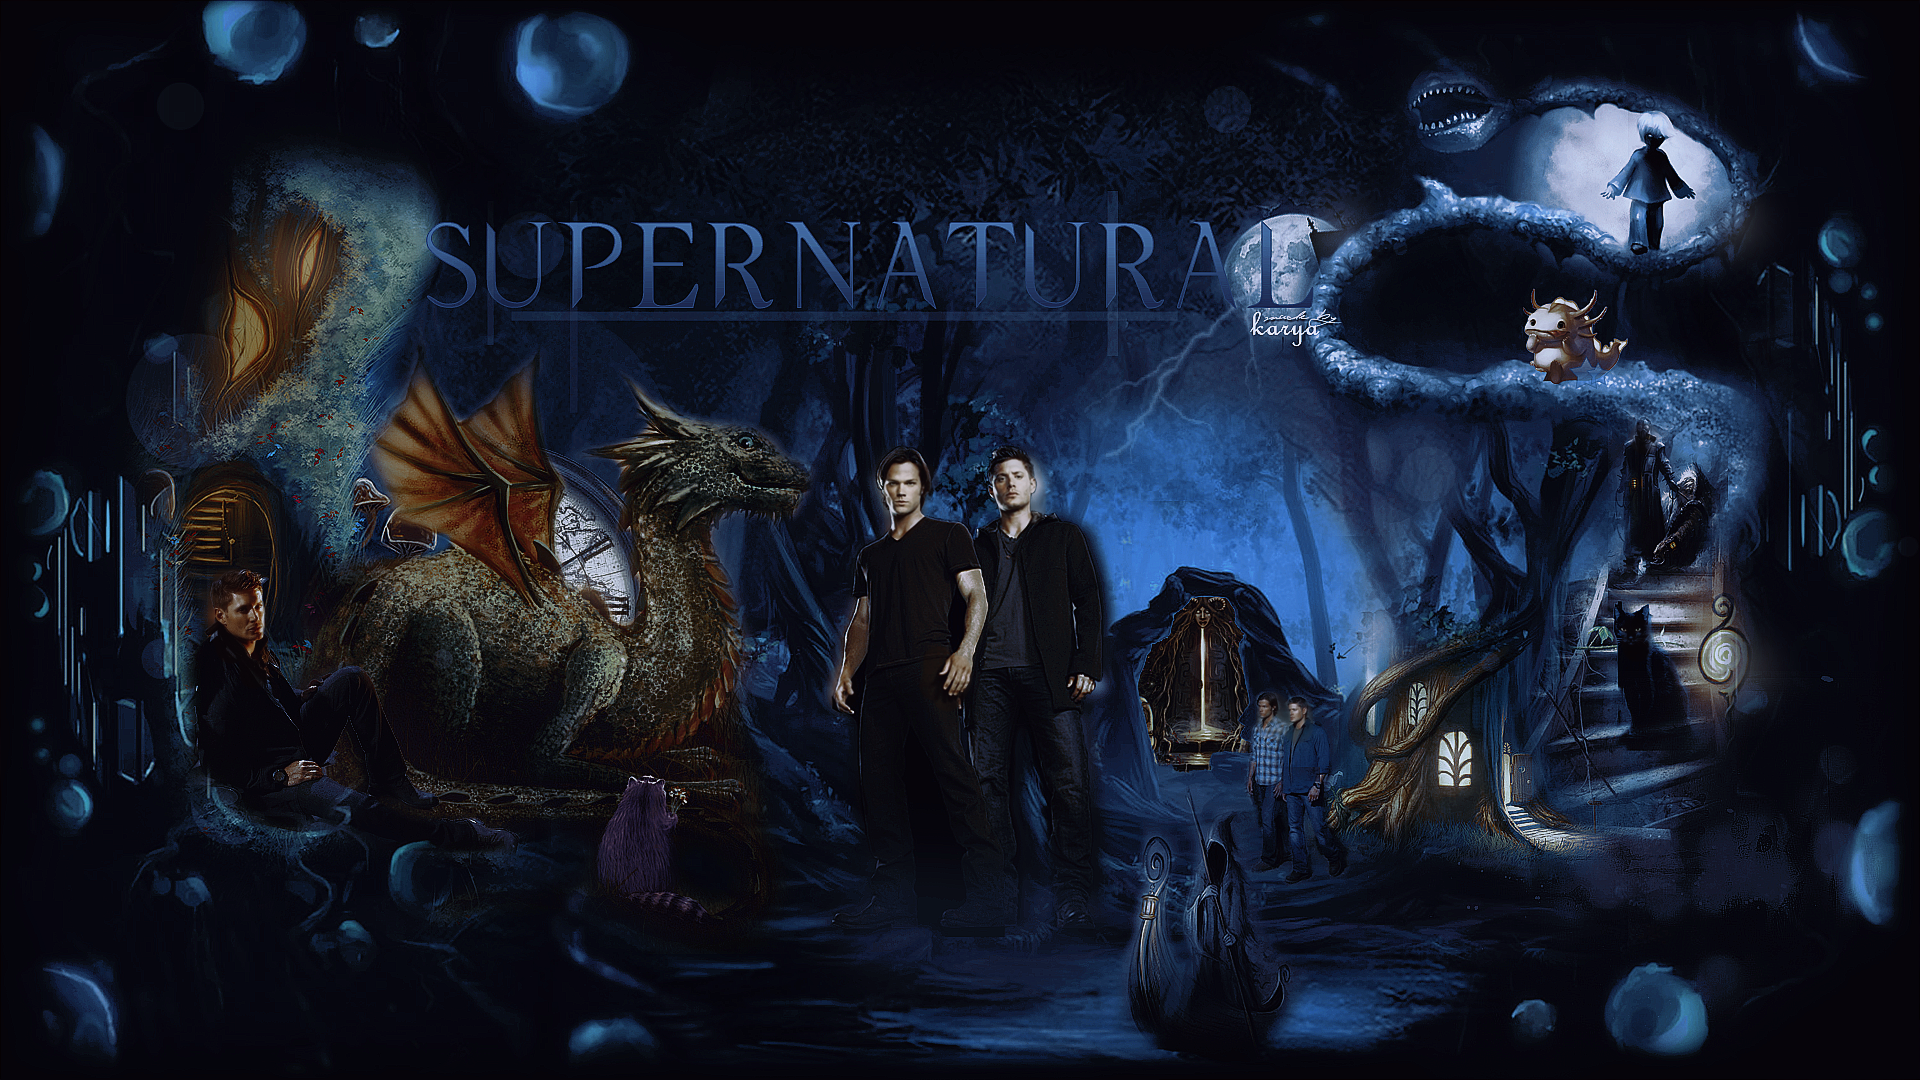 supernatural wallpaper livejournal justromanova photo 1920x1080